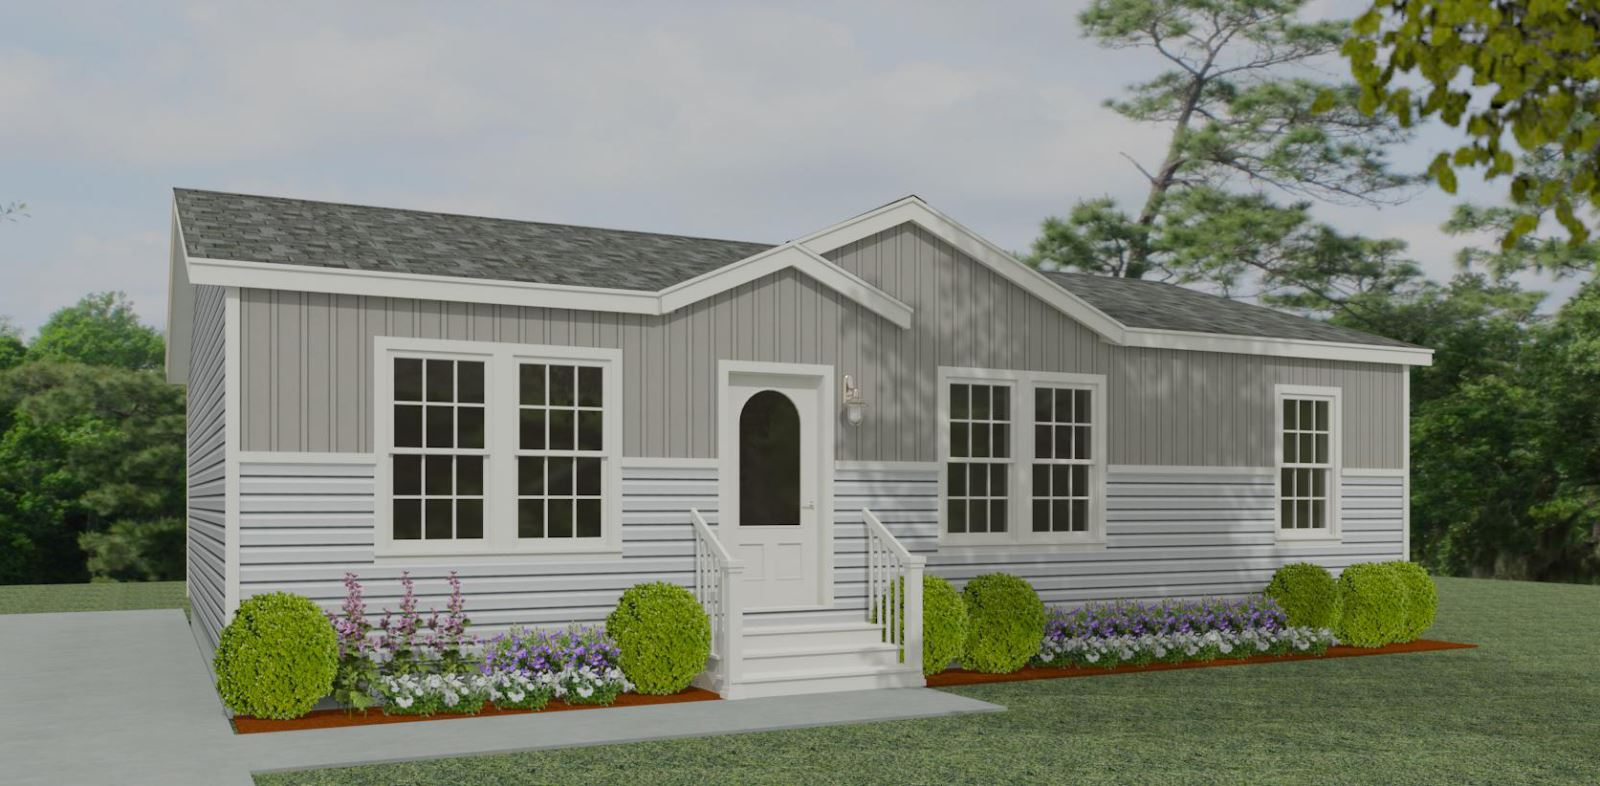 Exterior rendering Jacobsen homes floor plan model IMP-4447B